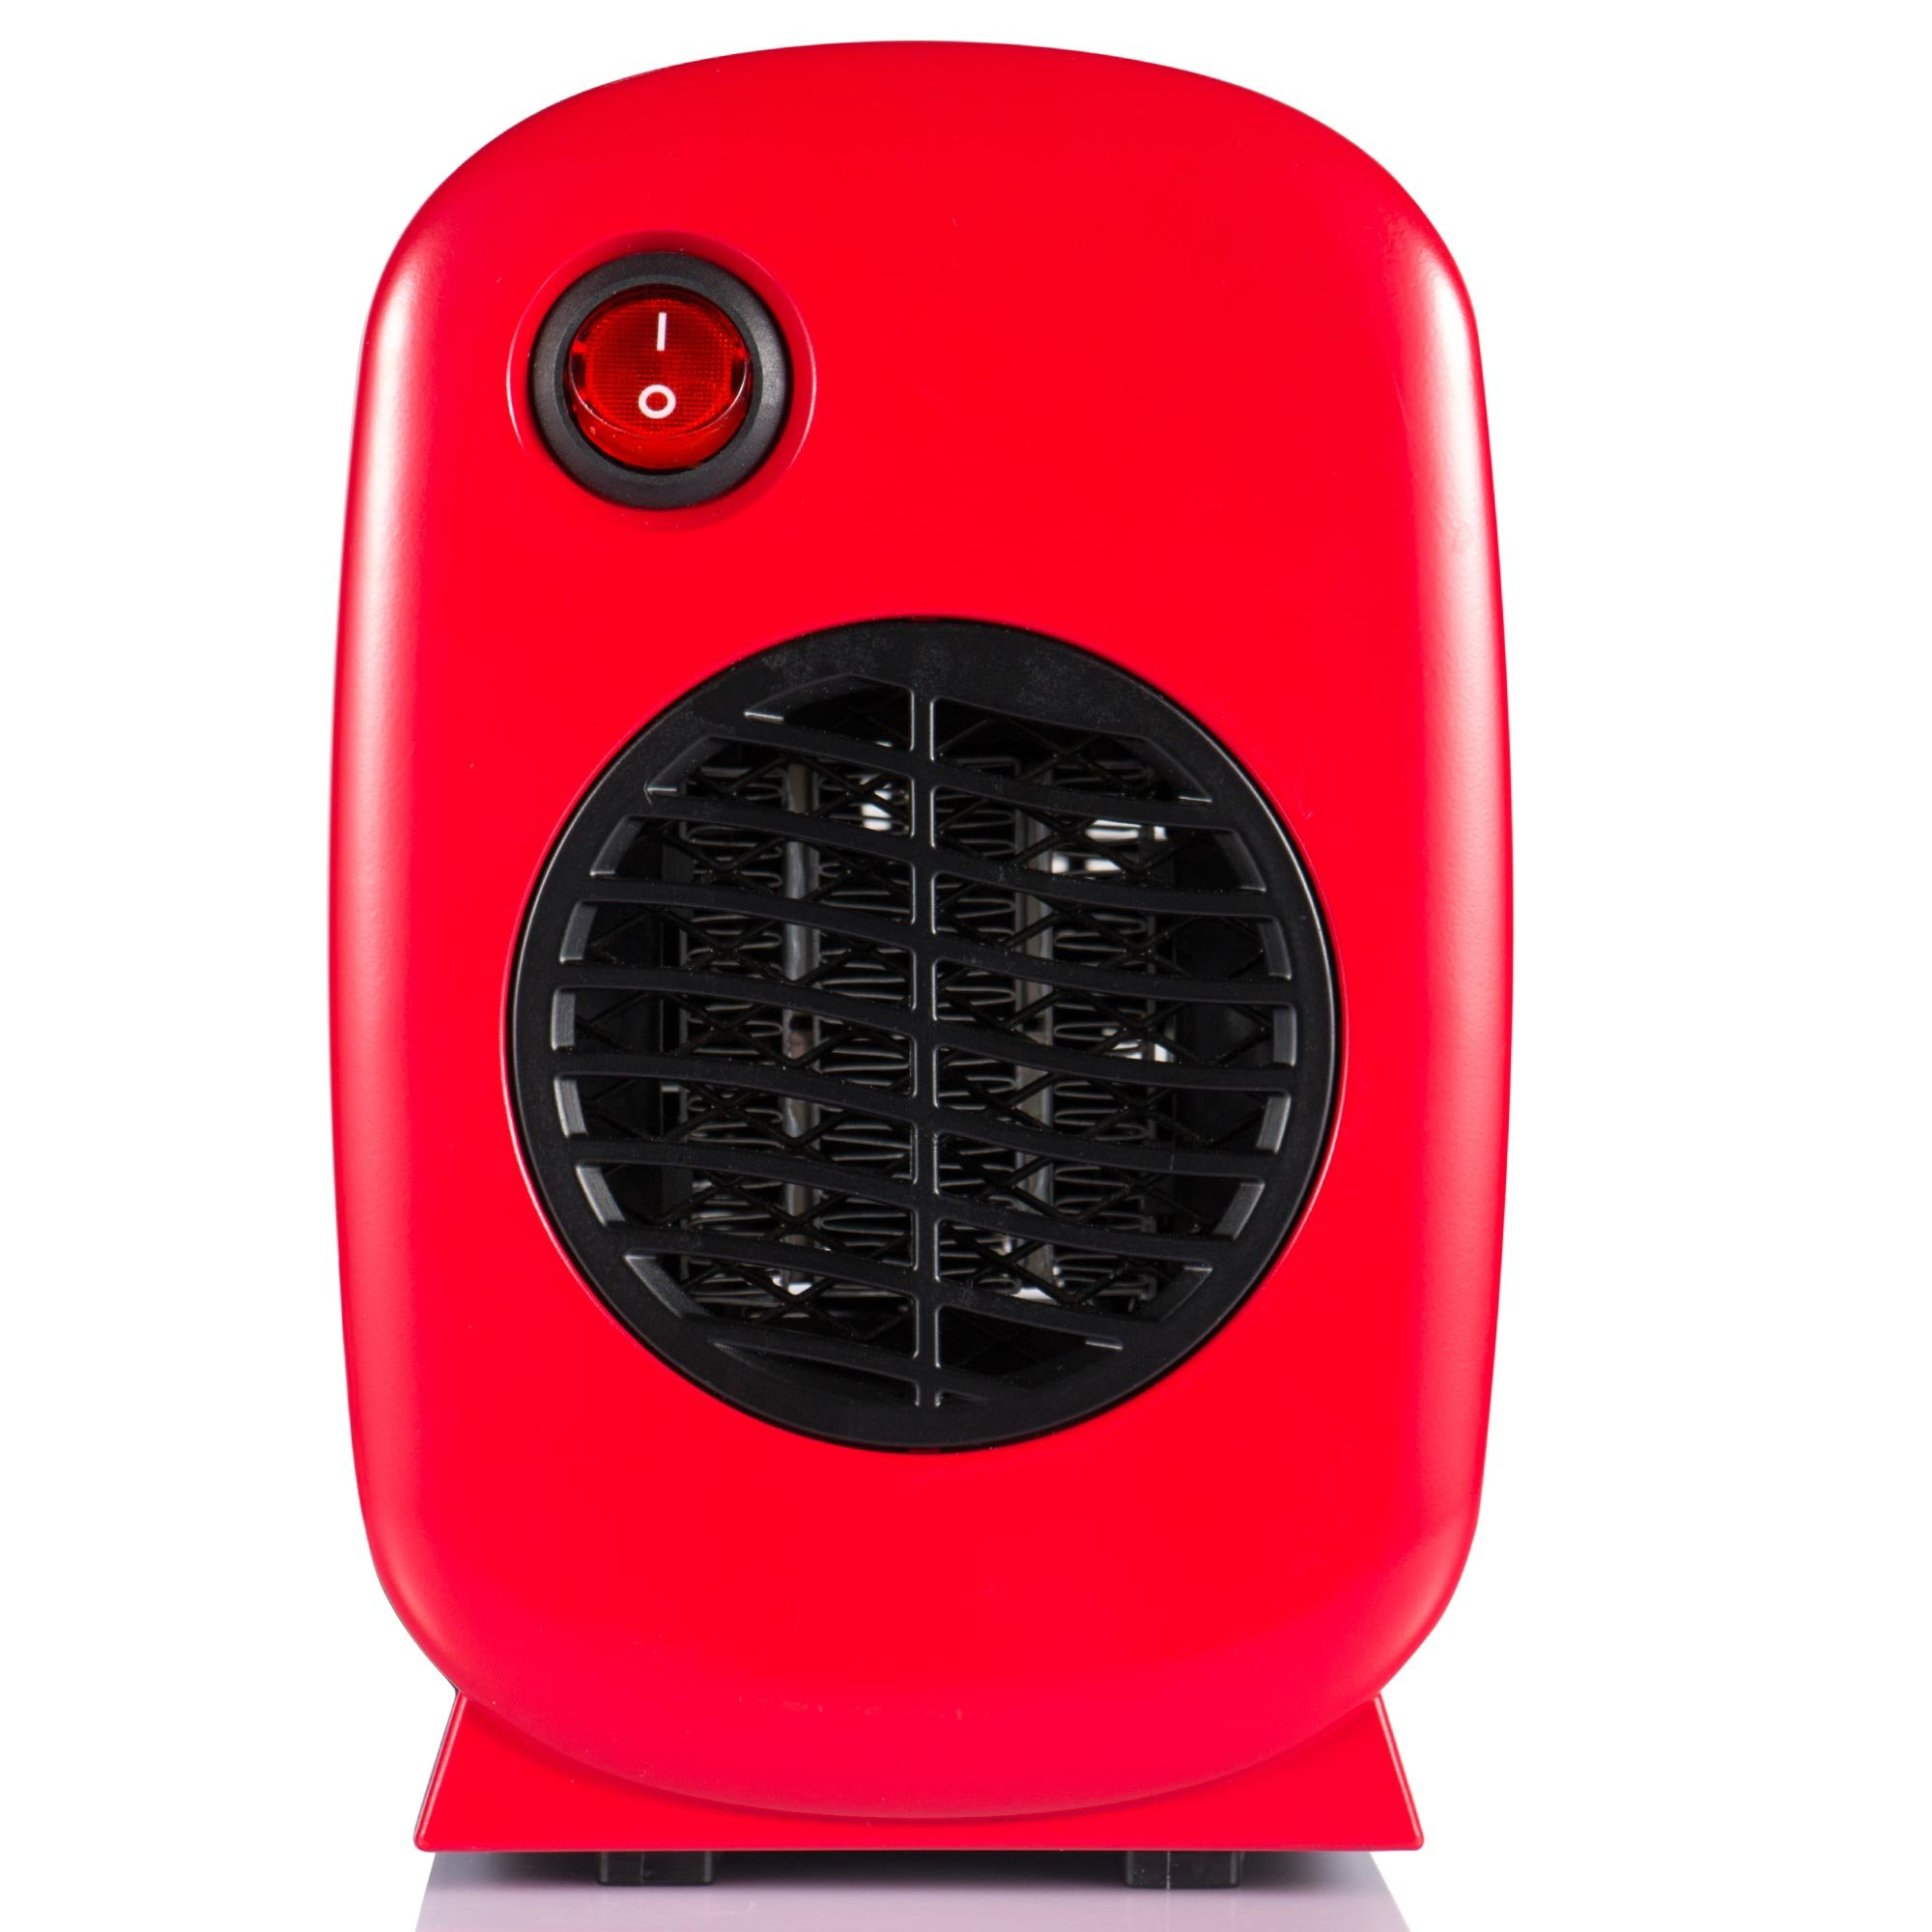 Personal Ceramic Portable-Mini Heater for Office Desktop Table Home Kitchen Dorm, 250-Watt ETL Listed for Safe Use, Red